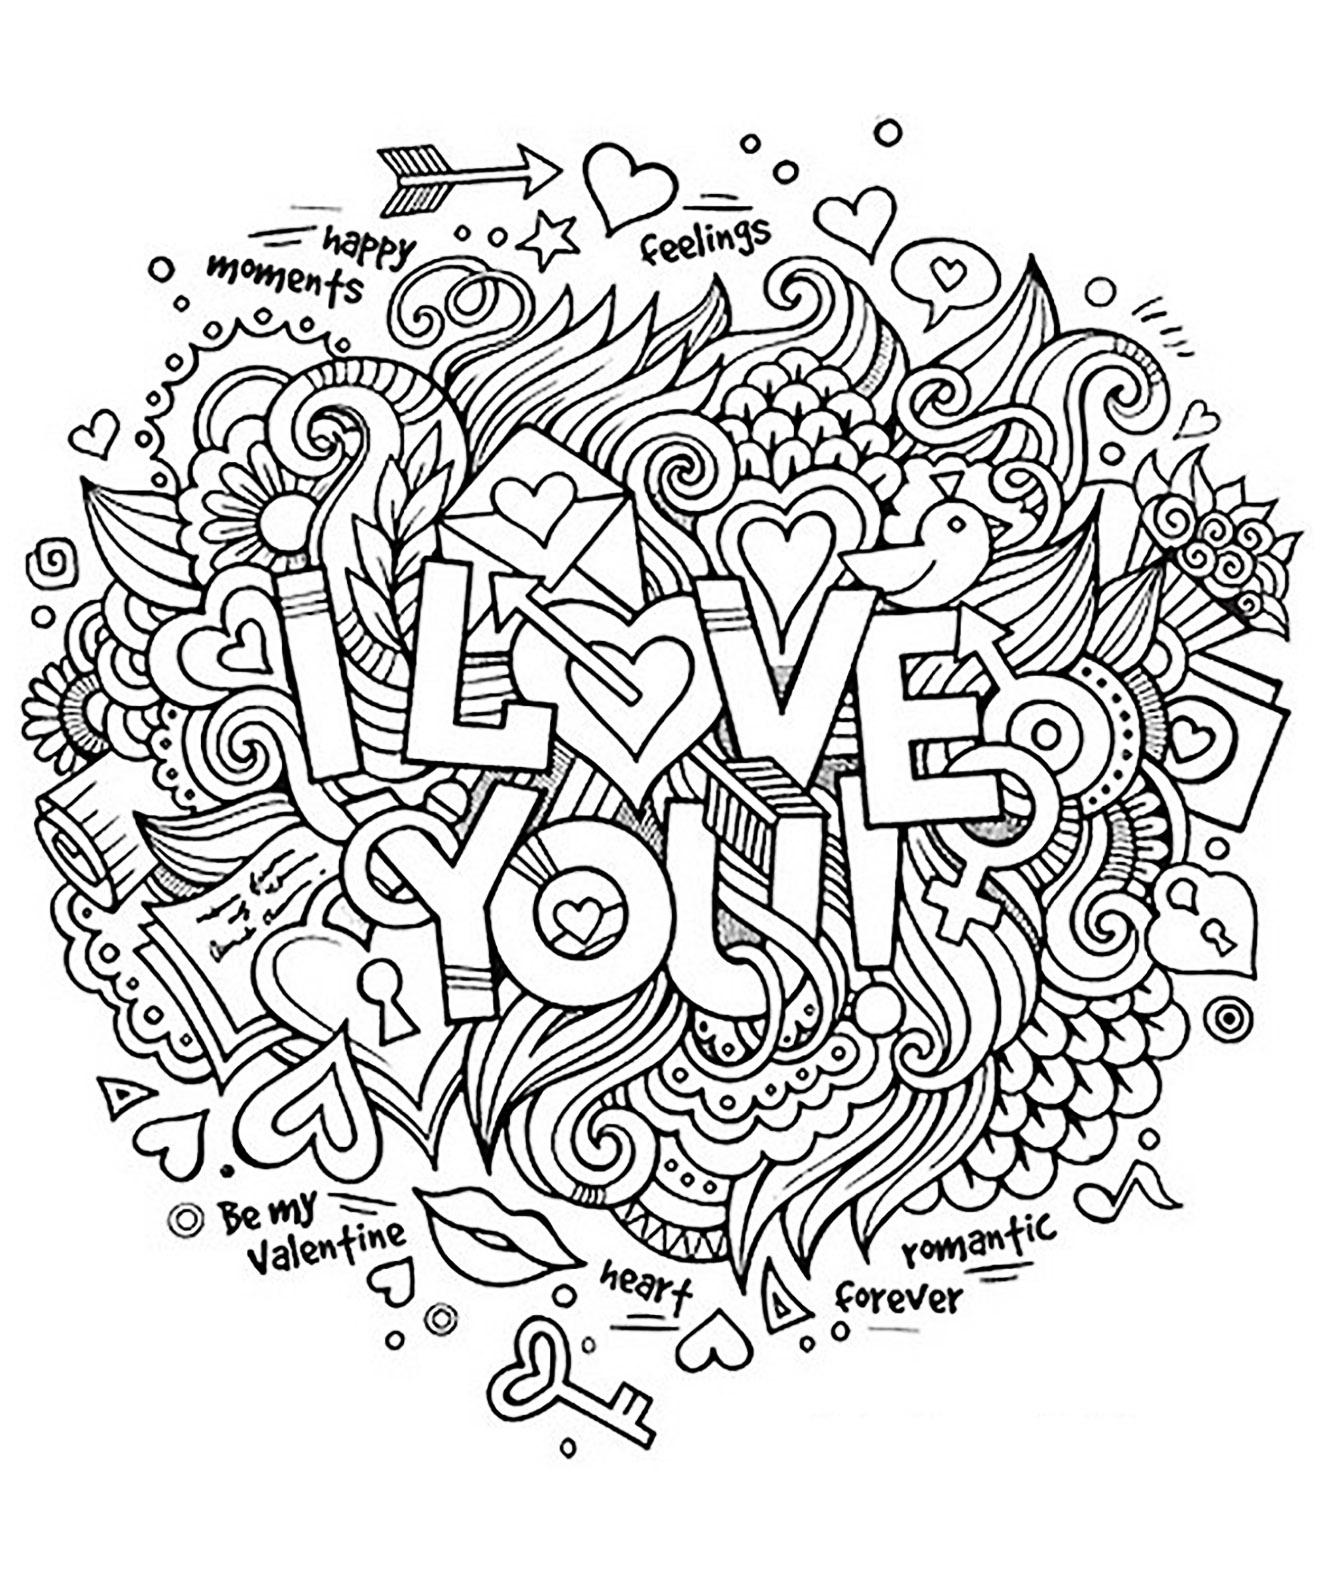 you positive inspiring quotes adult coloring countdown to christmas in az mandala lesson coloring pages Coloring Page I Love You